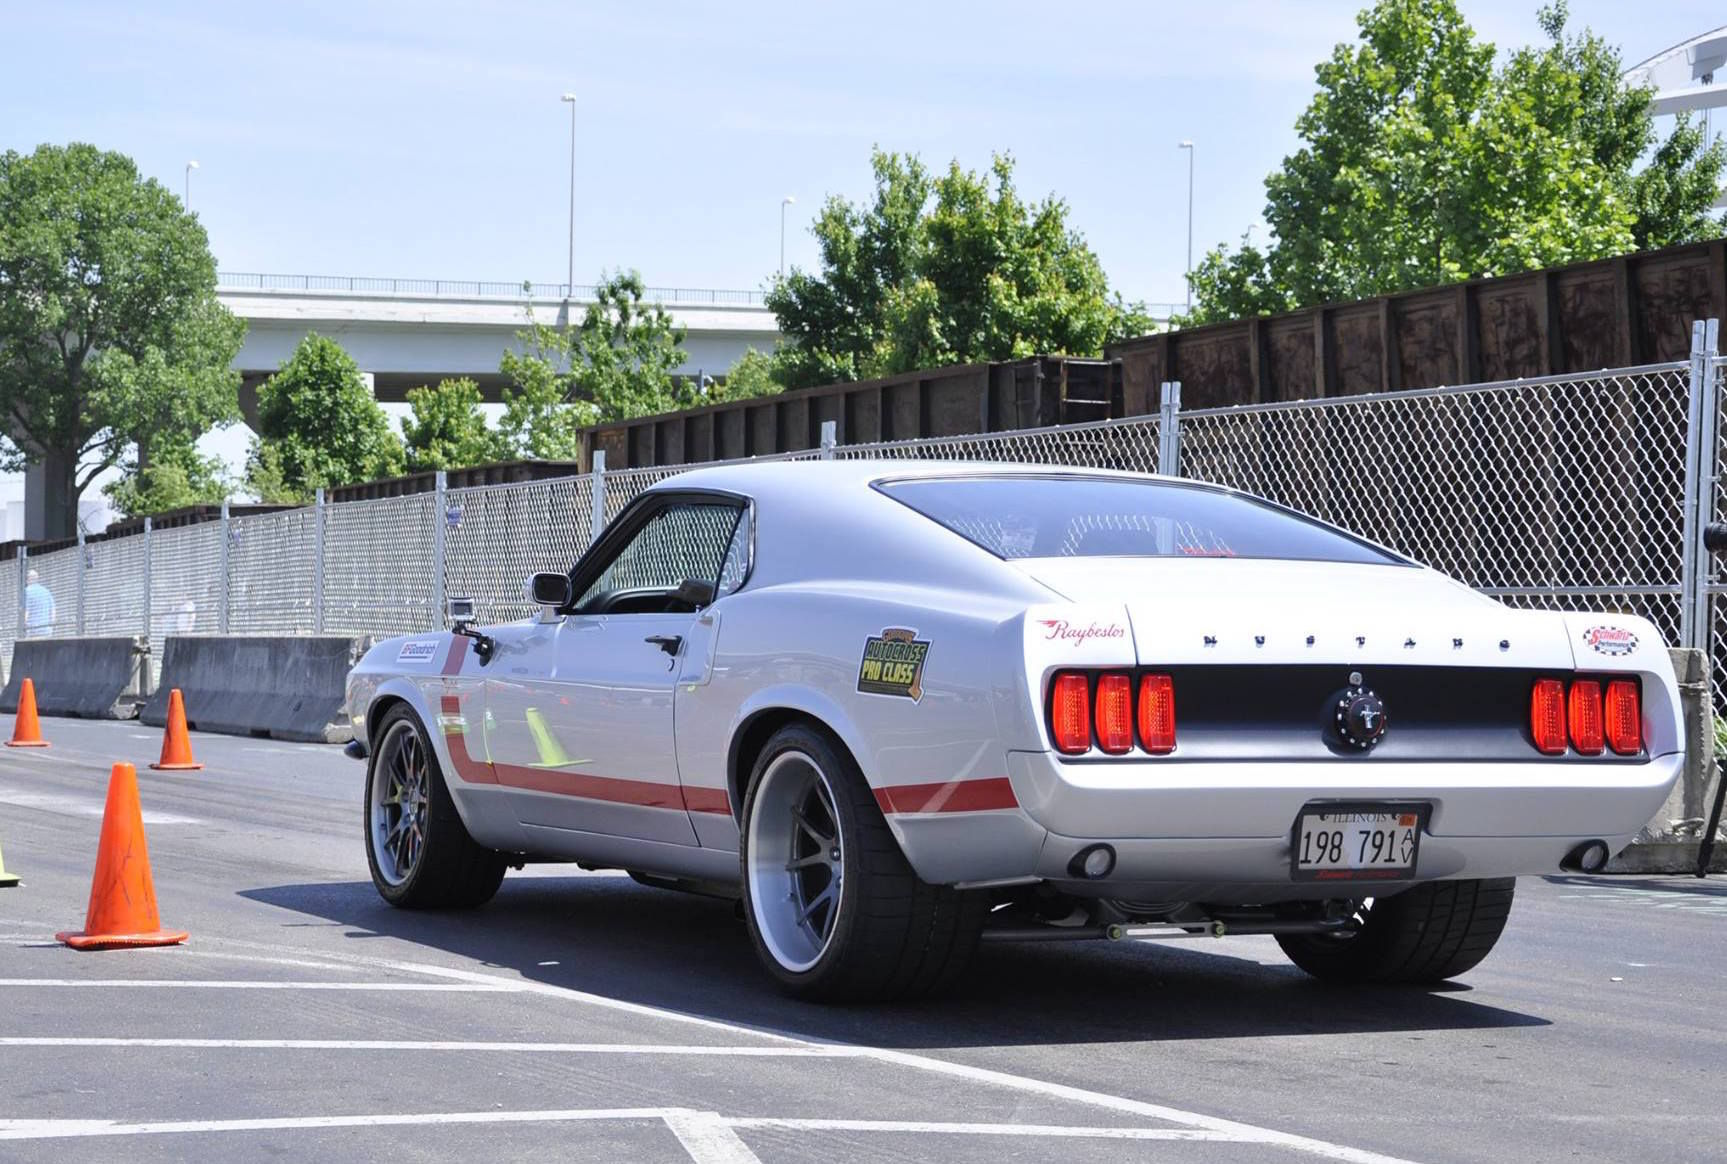 1969 Ford Mustang | Raybestos 1969 Mustang on Forgeline GA3C Concave Wheels